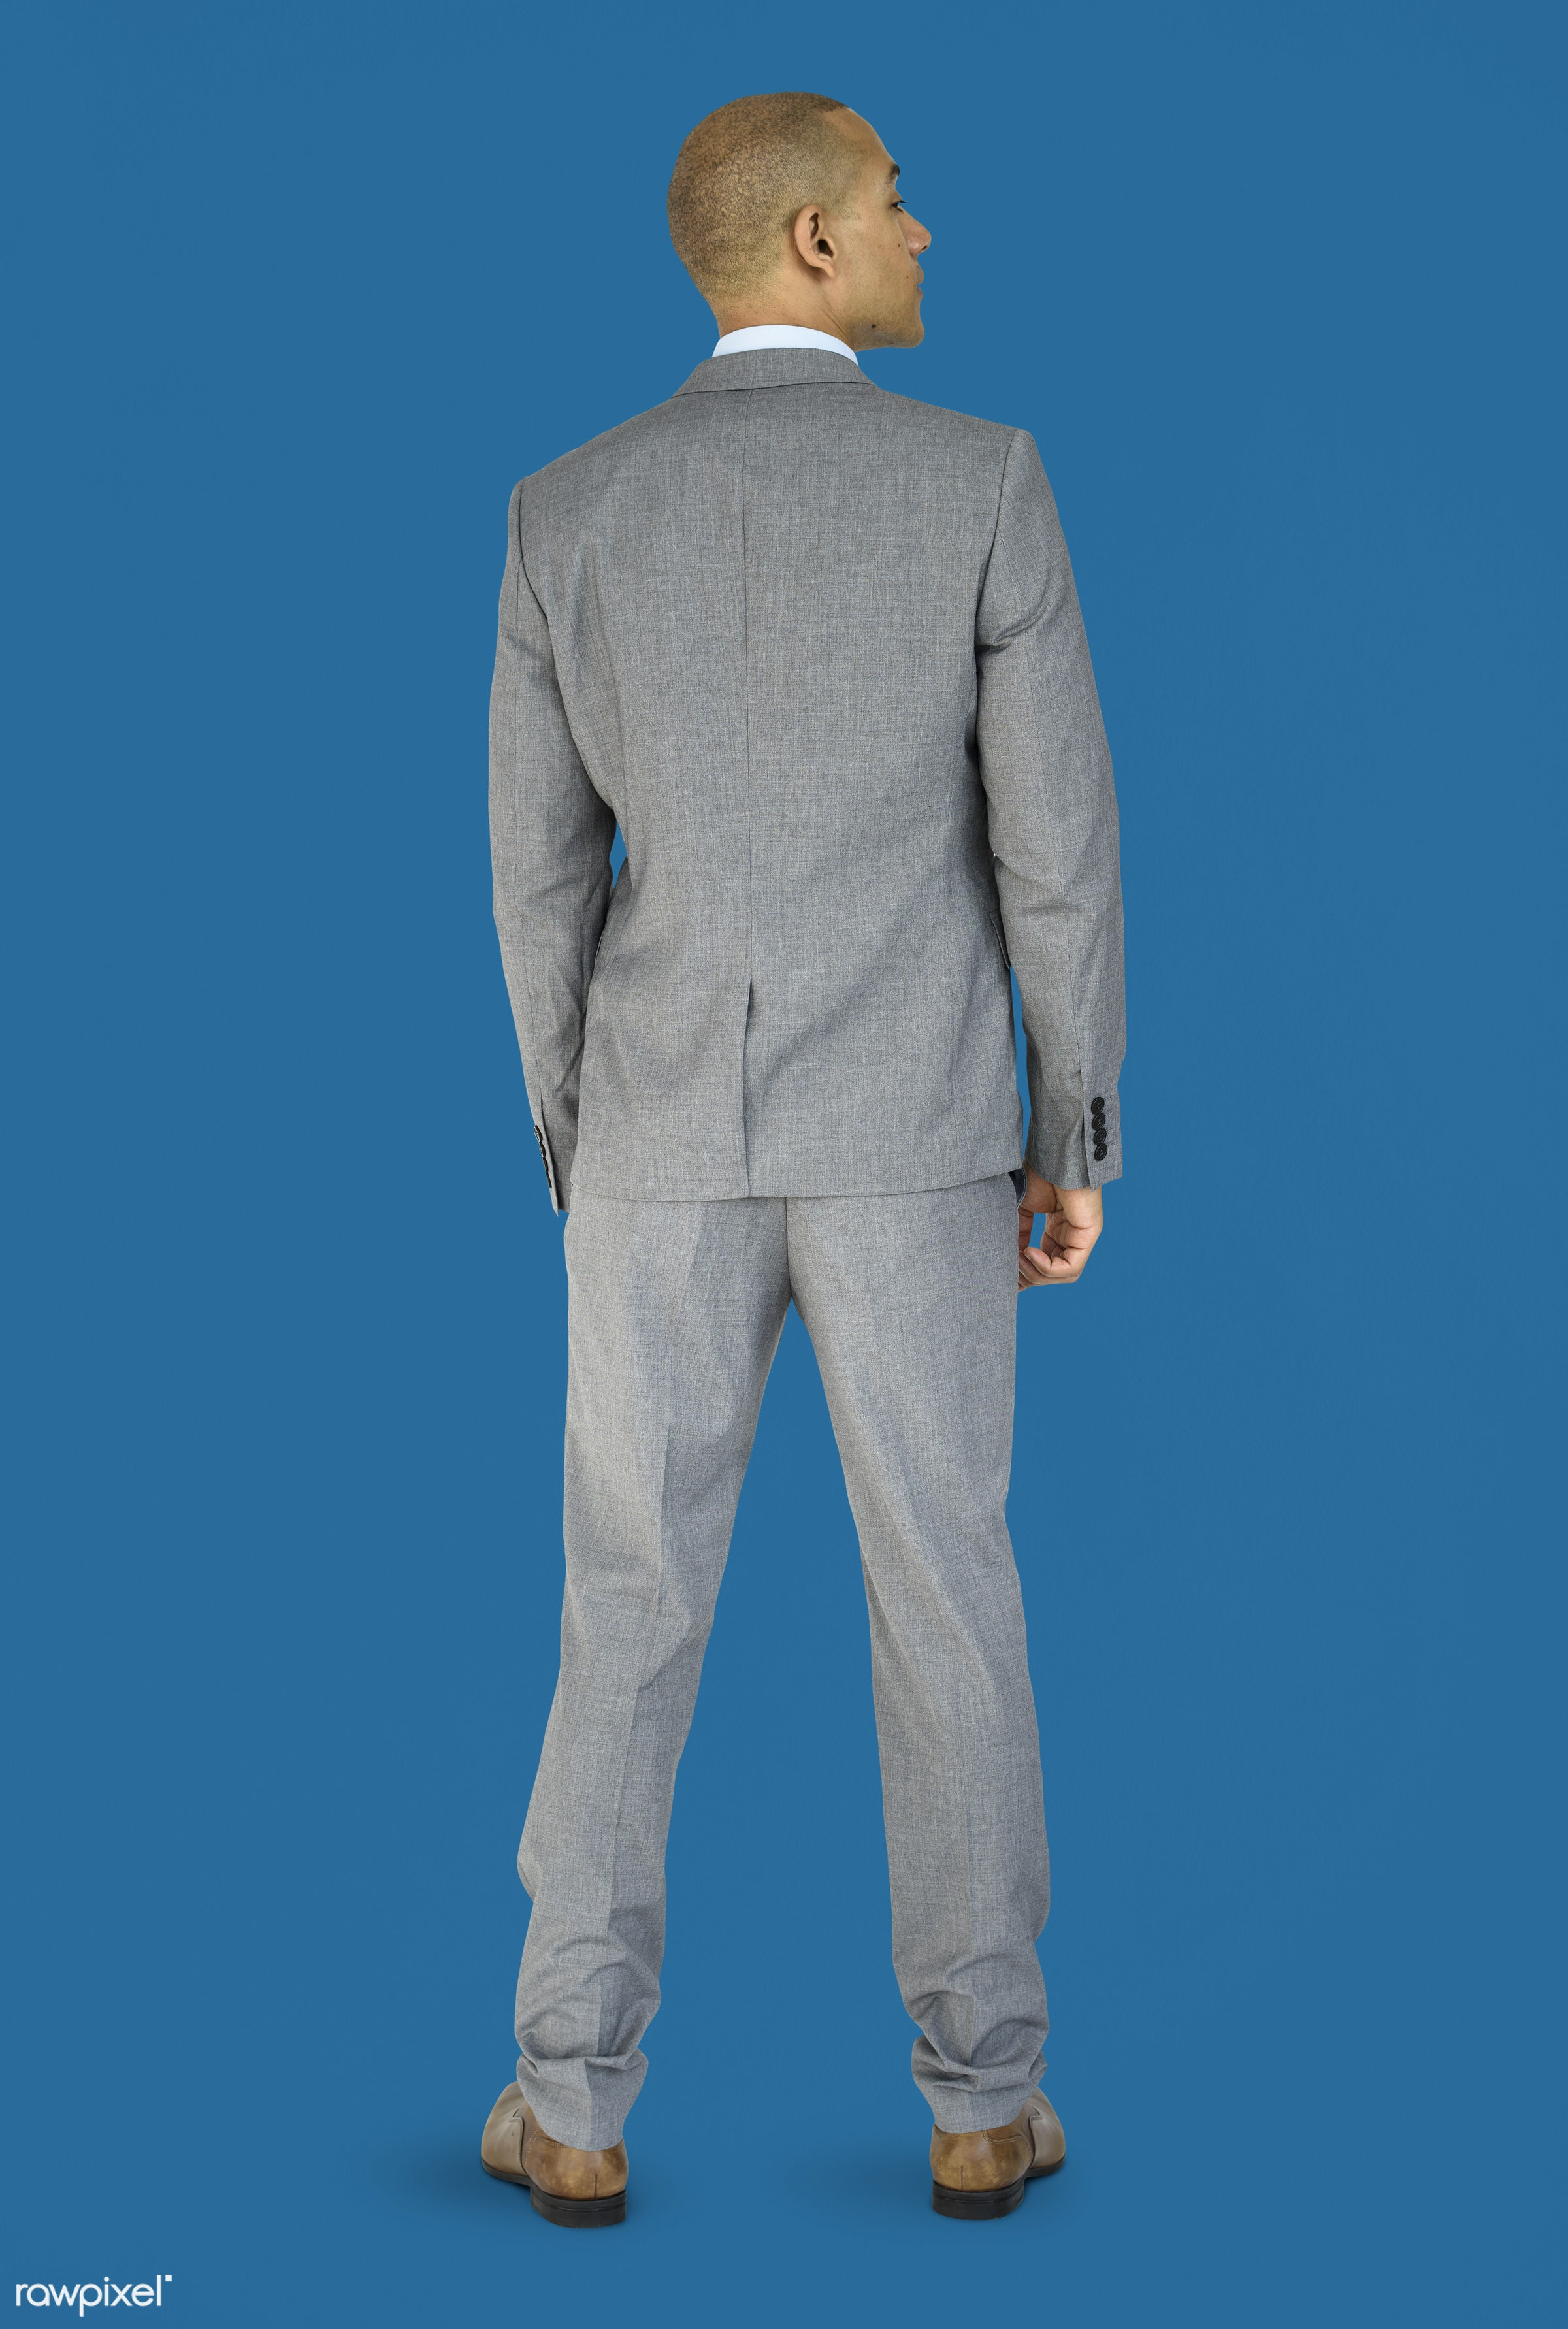 studio, person, people, business, businessman, man, abstract, rear view, isolated, male, adult, portrait, formal, blue,...